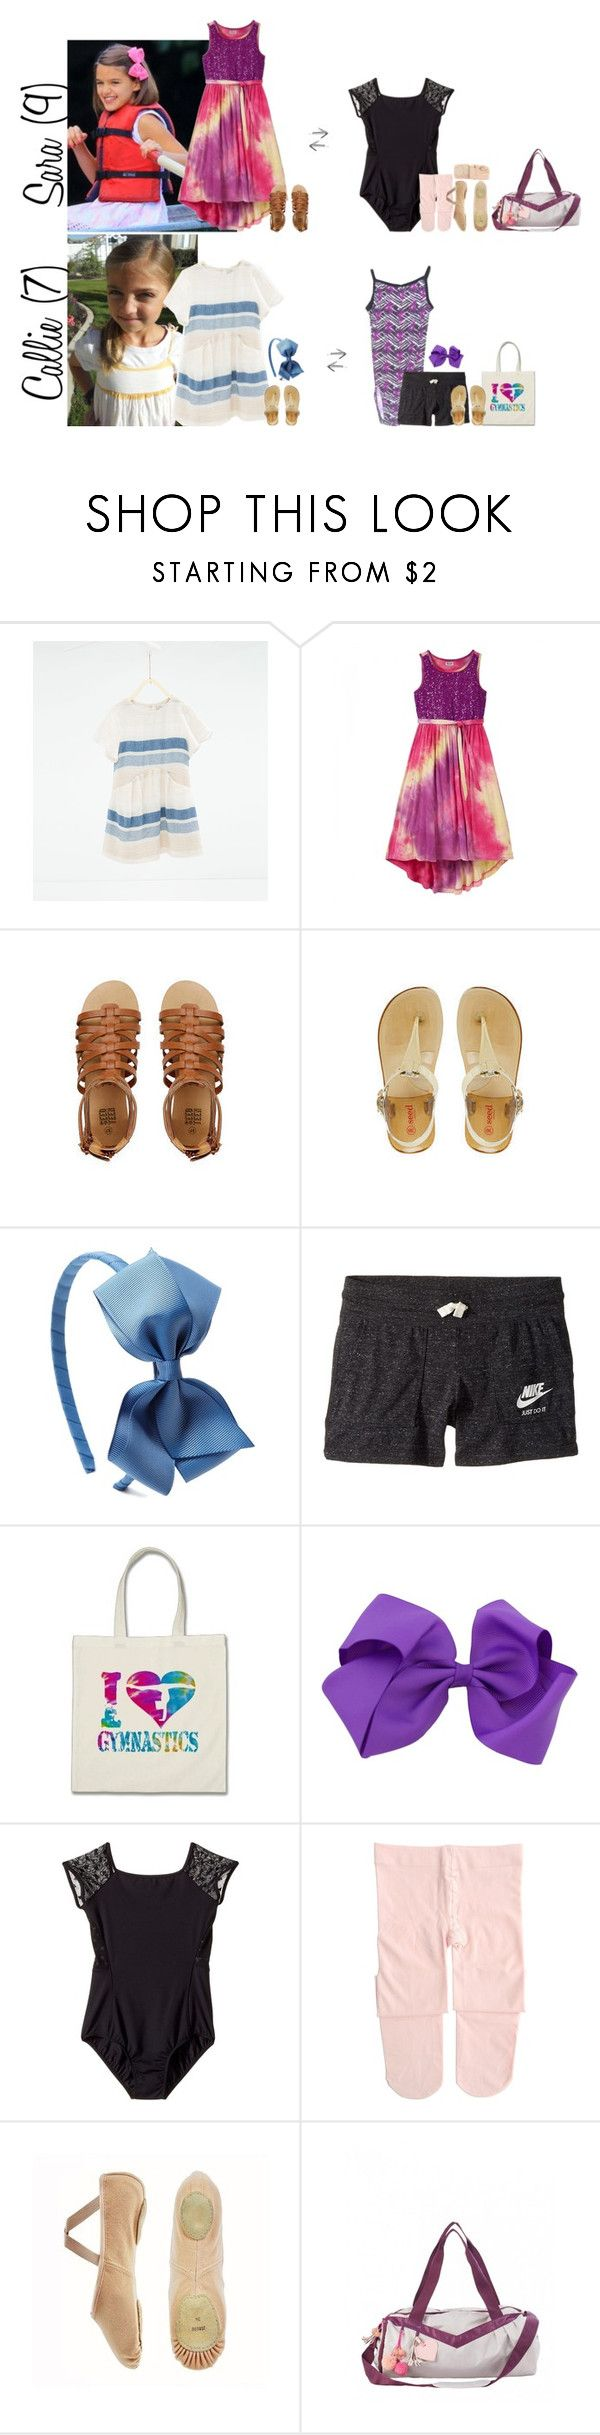 """""""Monday // Sam's Cast Comes Off & Activities // 6.26.17"""" by graywolf145 ❤ liked on Polyvore featuring Zara, NIKE, Bloch, Capezio and GrayWolfFamily"""